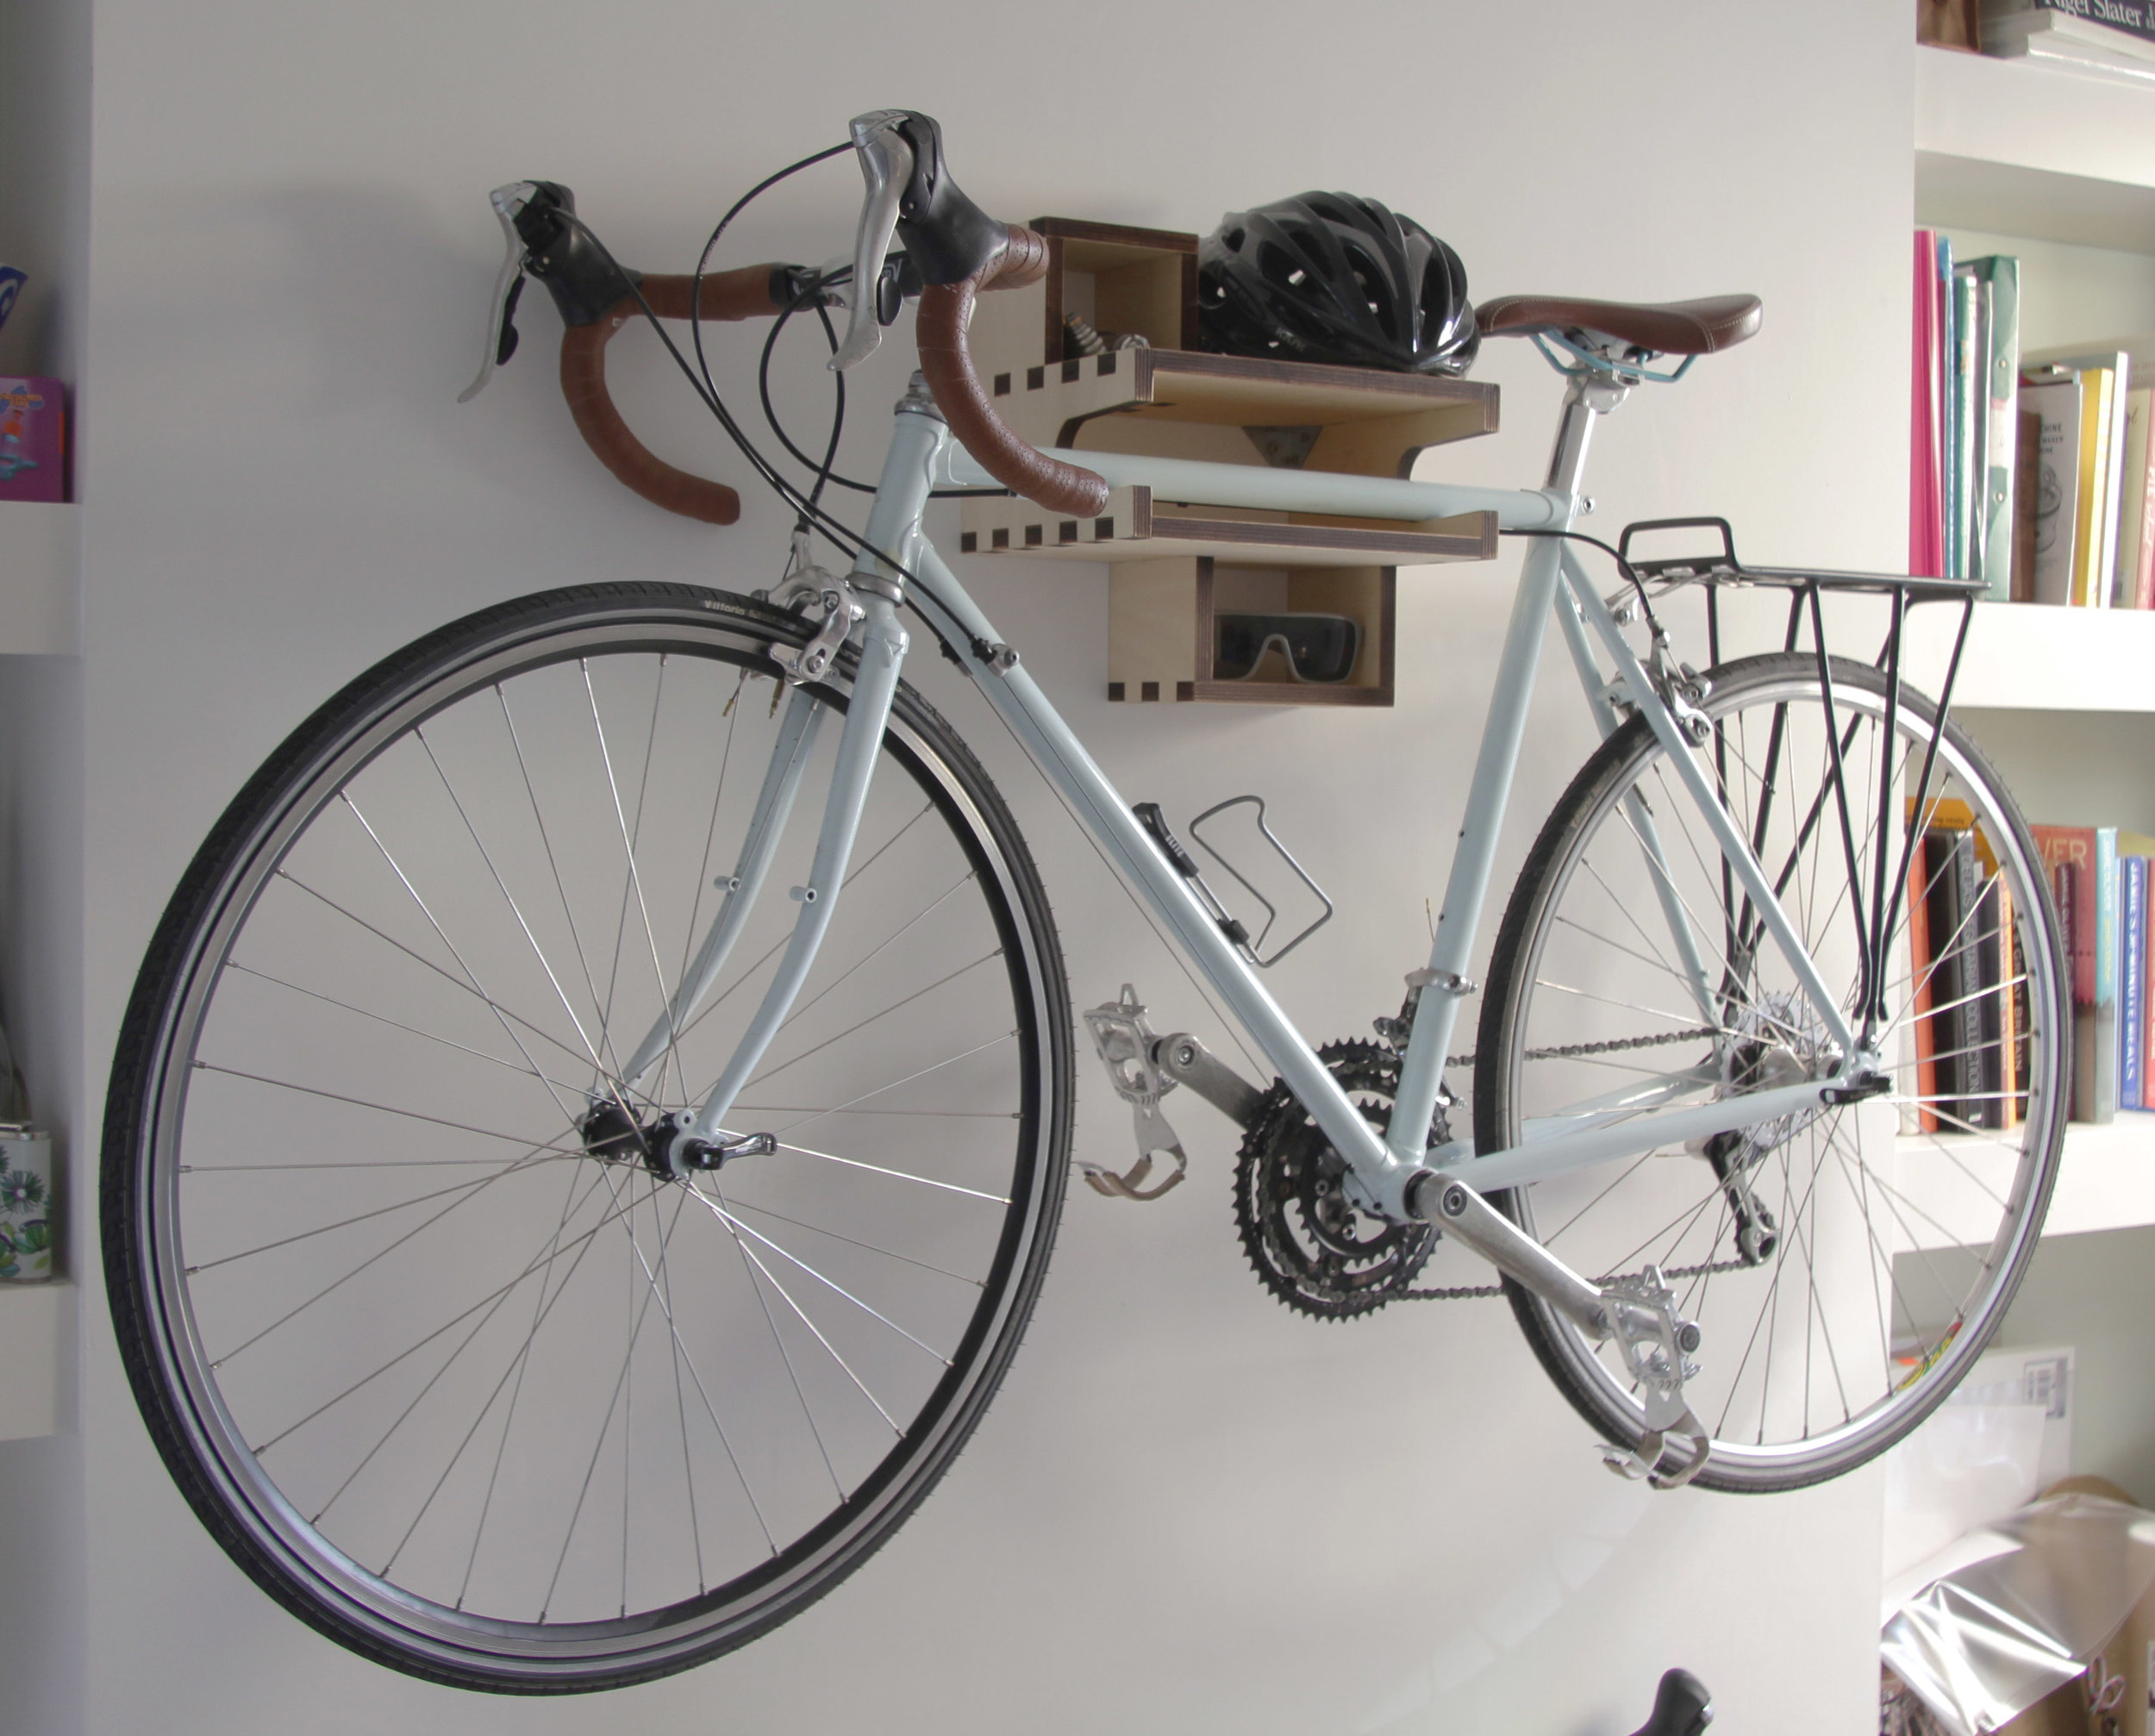 10 of the best bike storage systems: racks and hooks for indoor ...